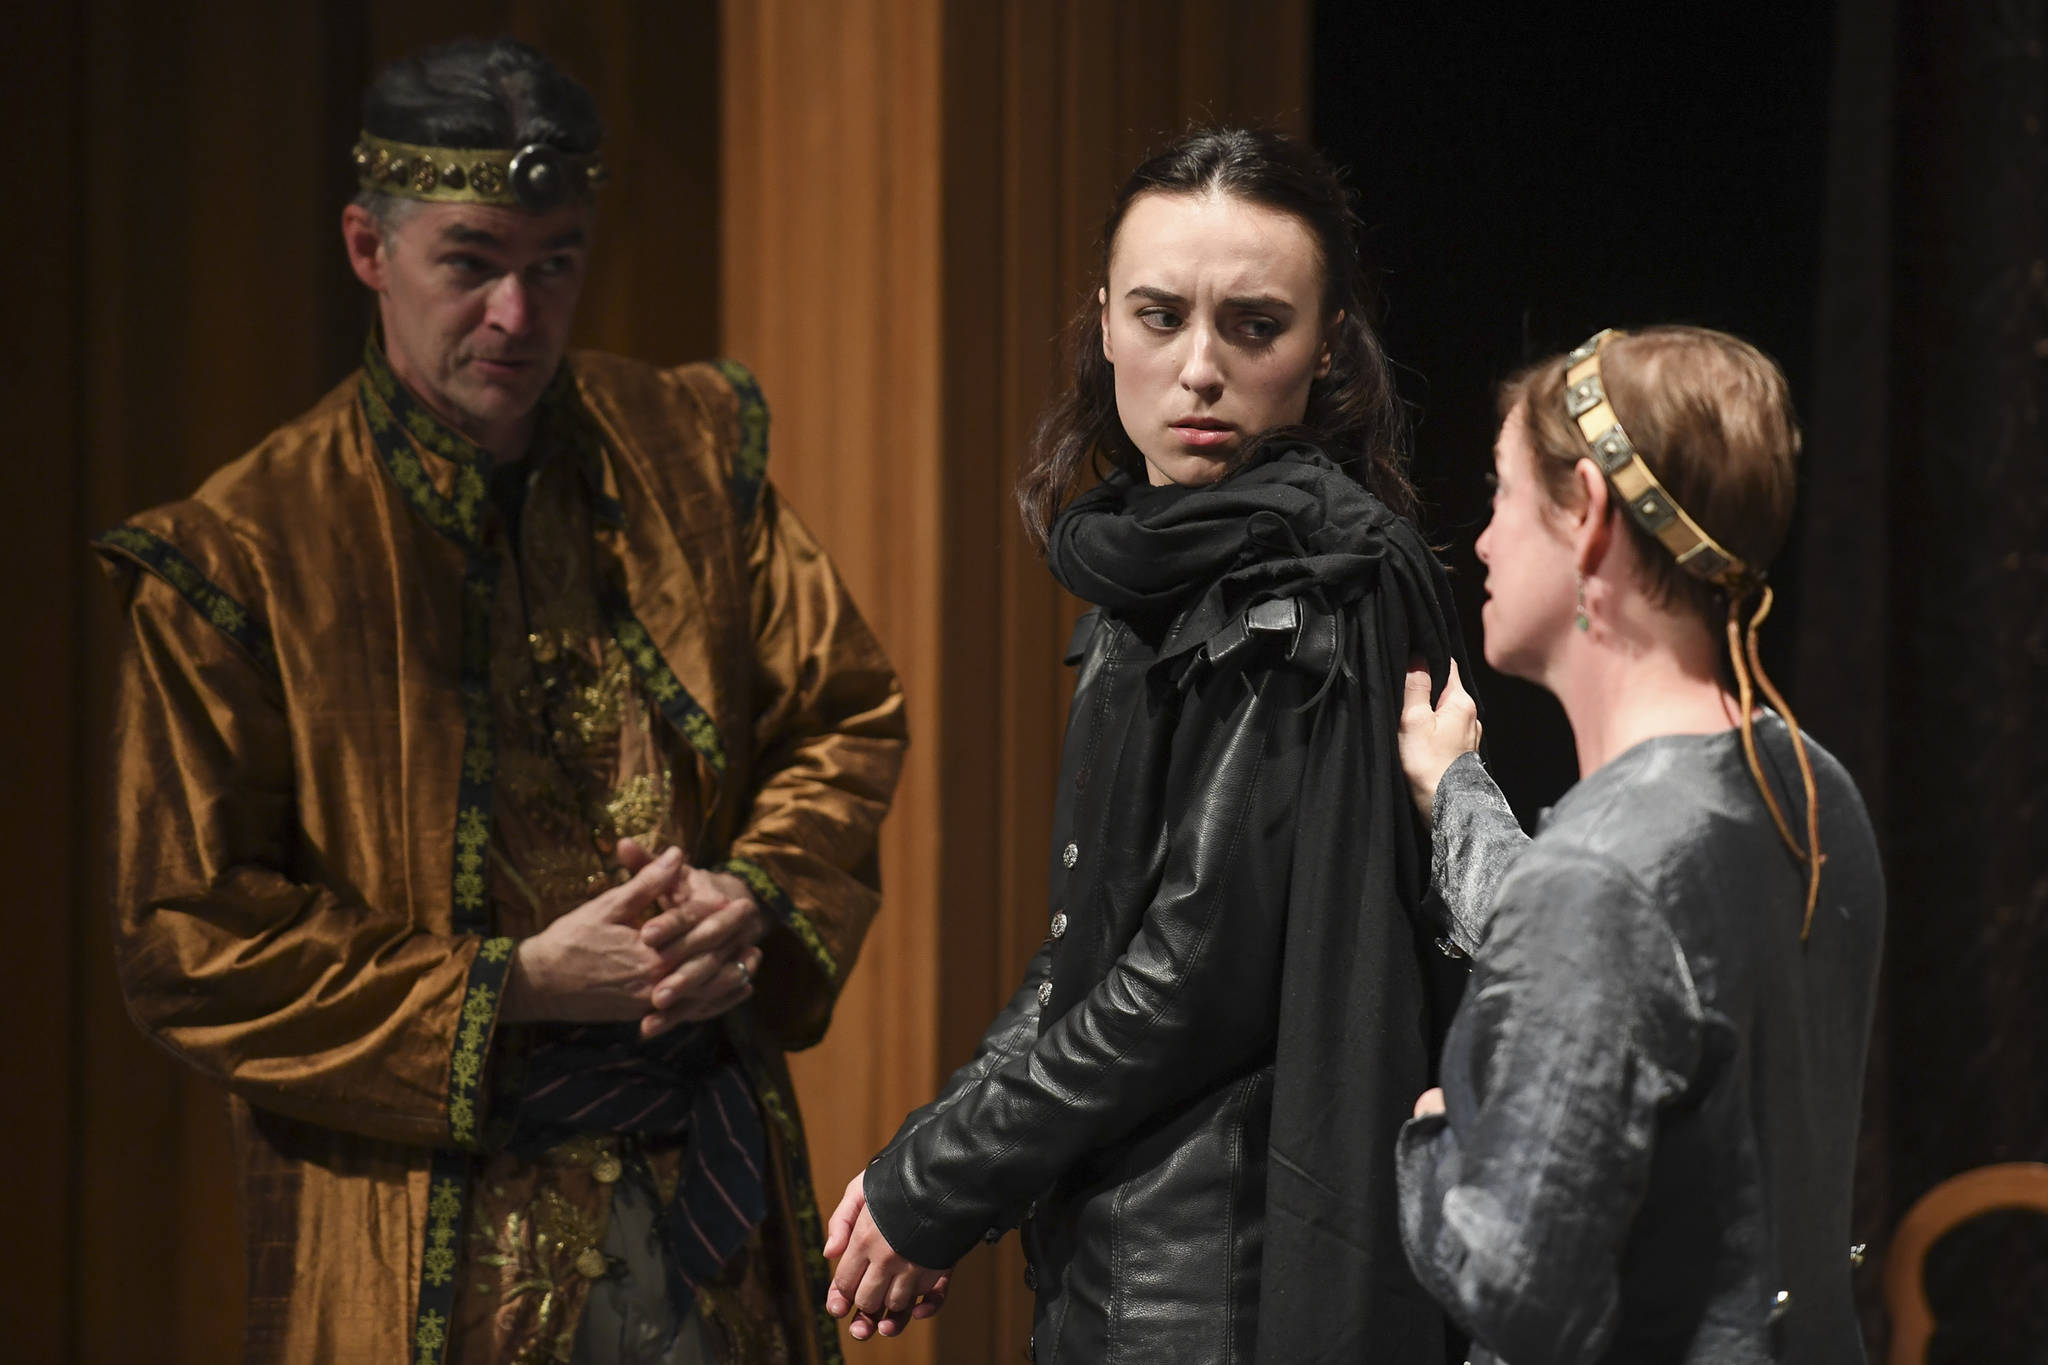 "Natalia Spengler, center, plays Hamlet with Donice Gott, as his mother Gertrude, Queen of Denmark, and Aaron Elmore as Claudius, King of Denmark, during a performance of William Shakespeare's ""Hamlet"" by Theatre in the Rough at McPhetres Hall on Tuesday, July 2, 2019. (Michael Penn 